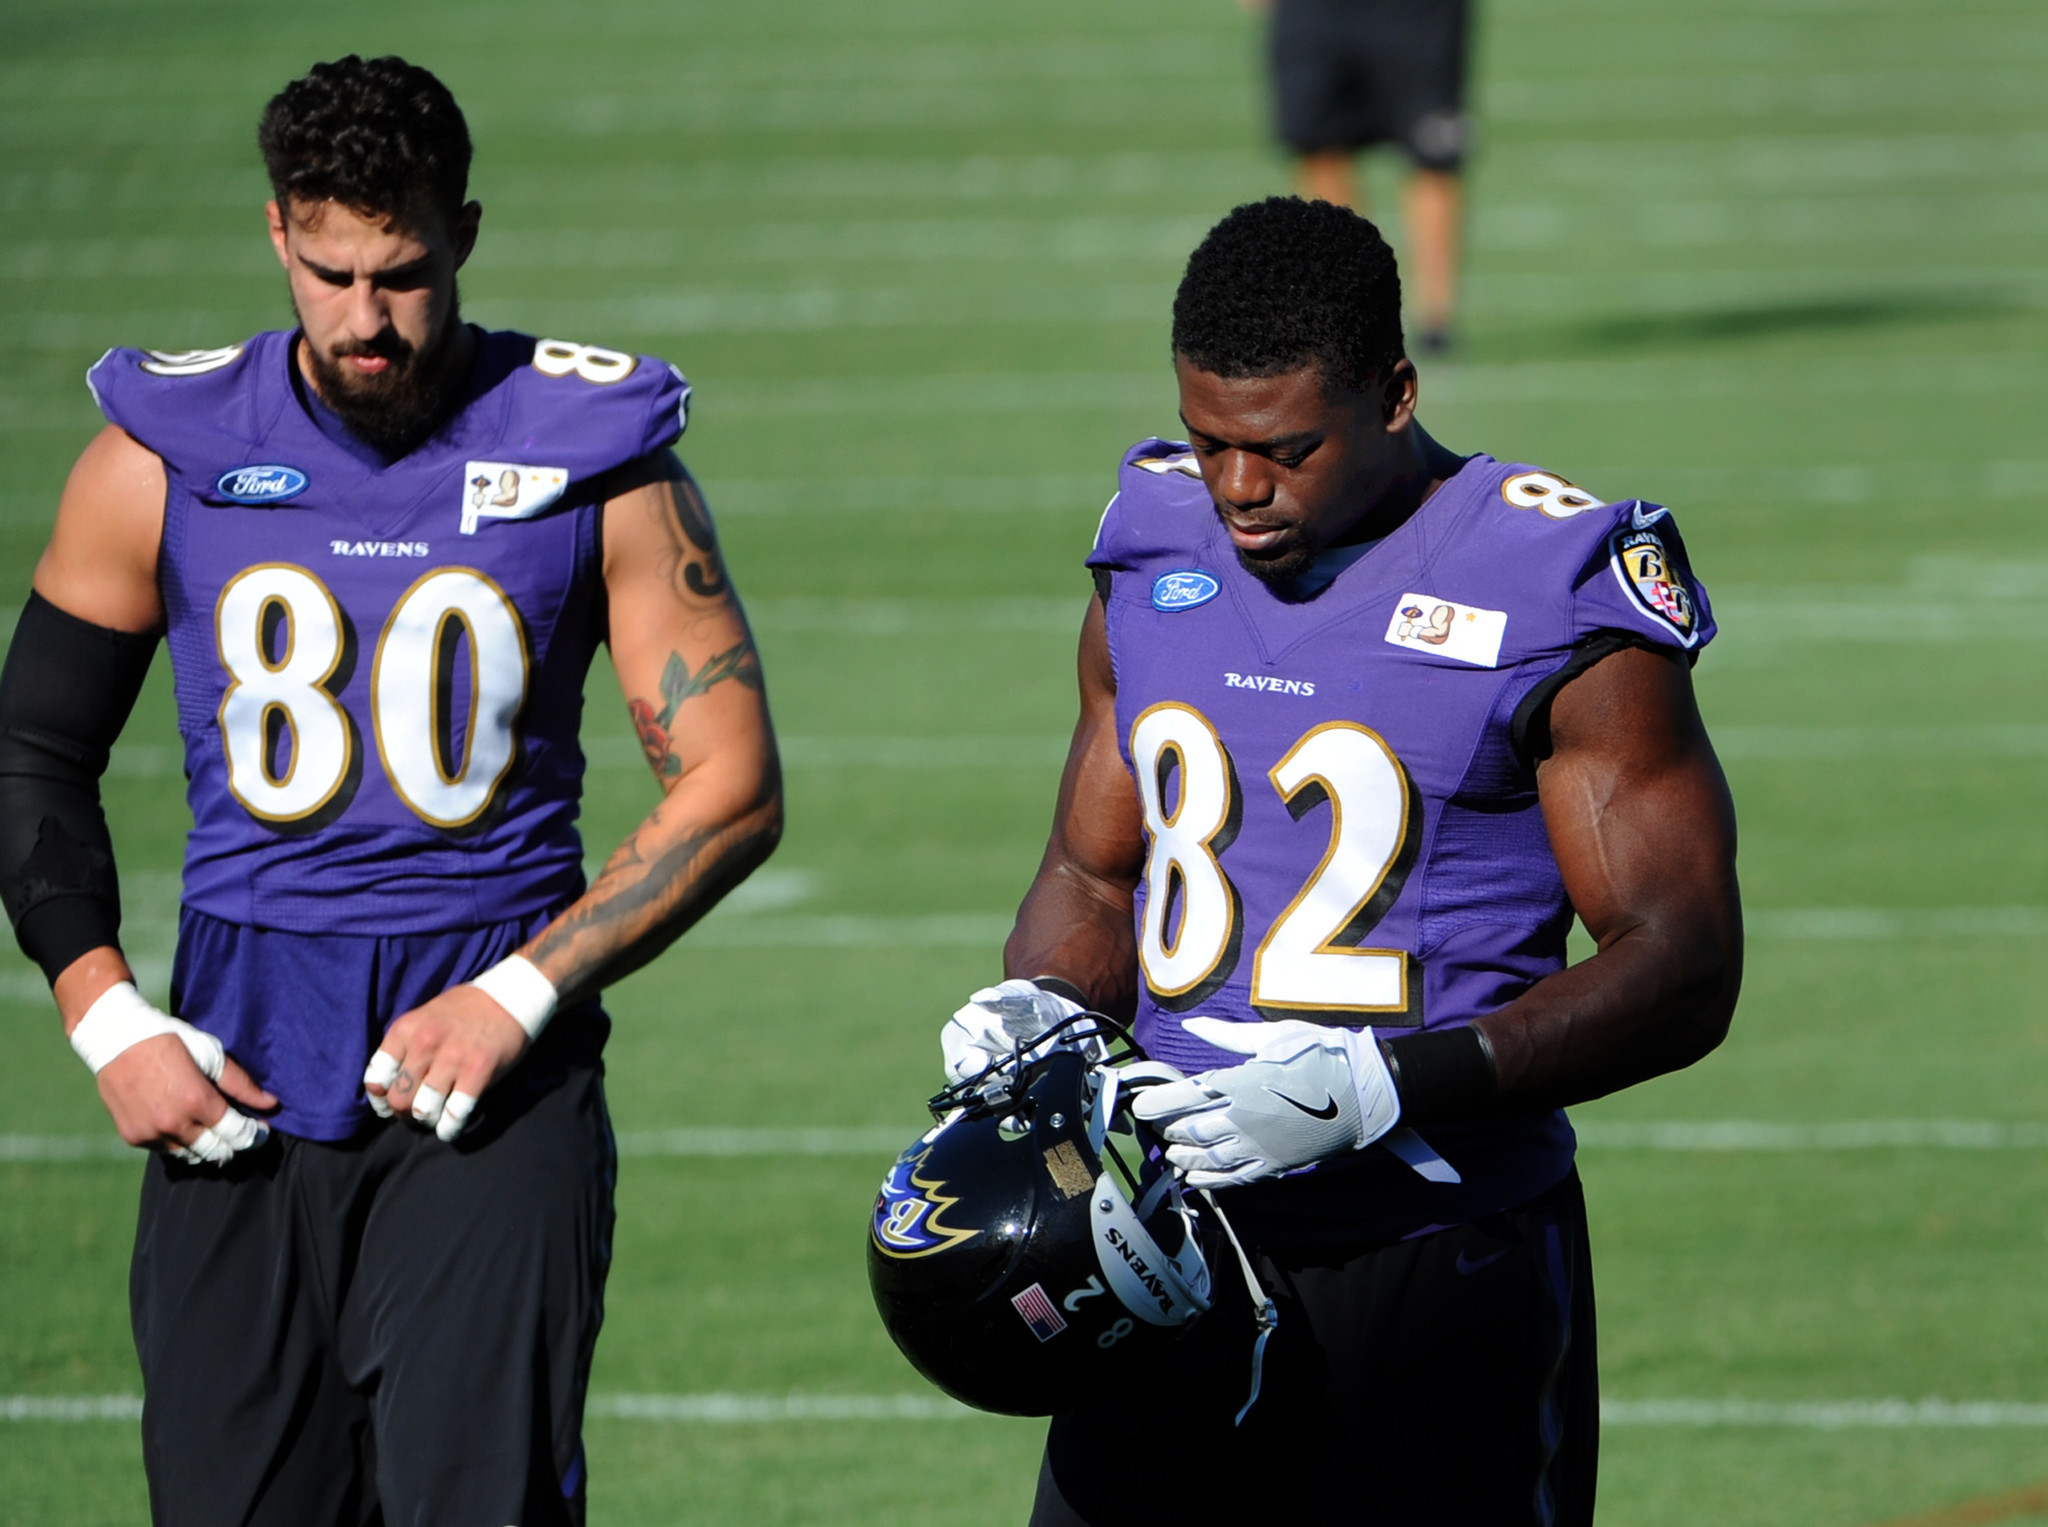 Bal-john-harbaugh-excited-to-see-how-the-competition-at-tight-end-plays-out-20170328